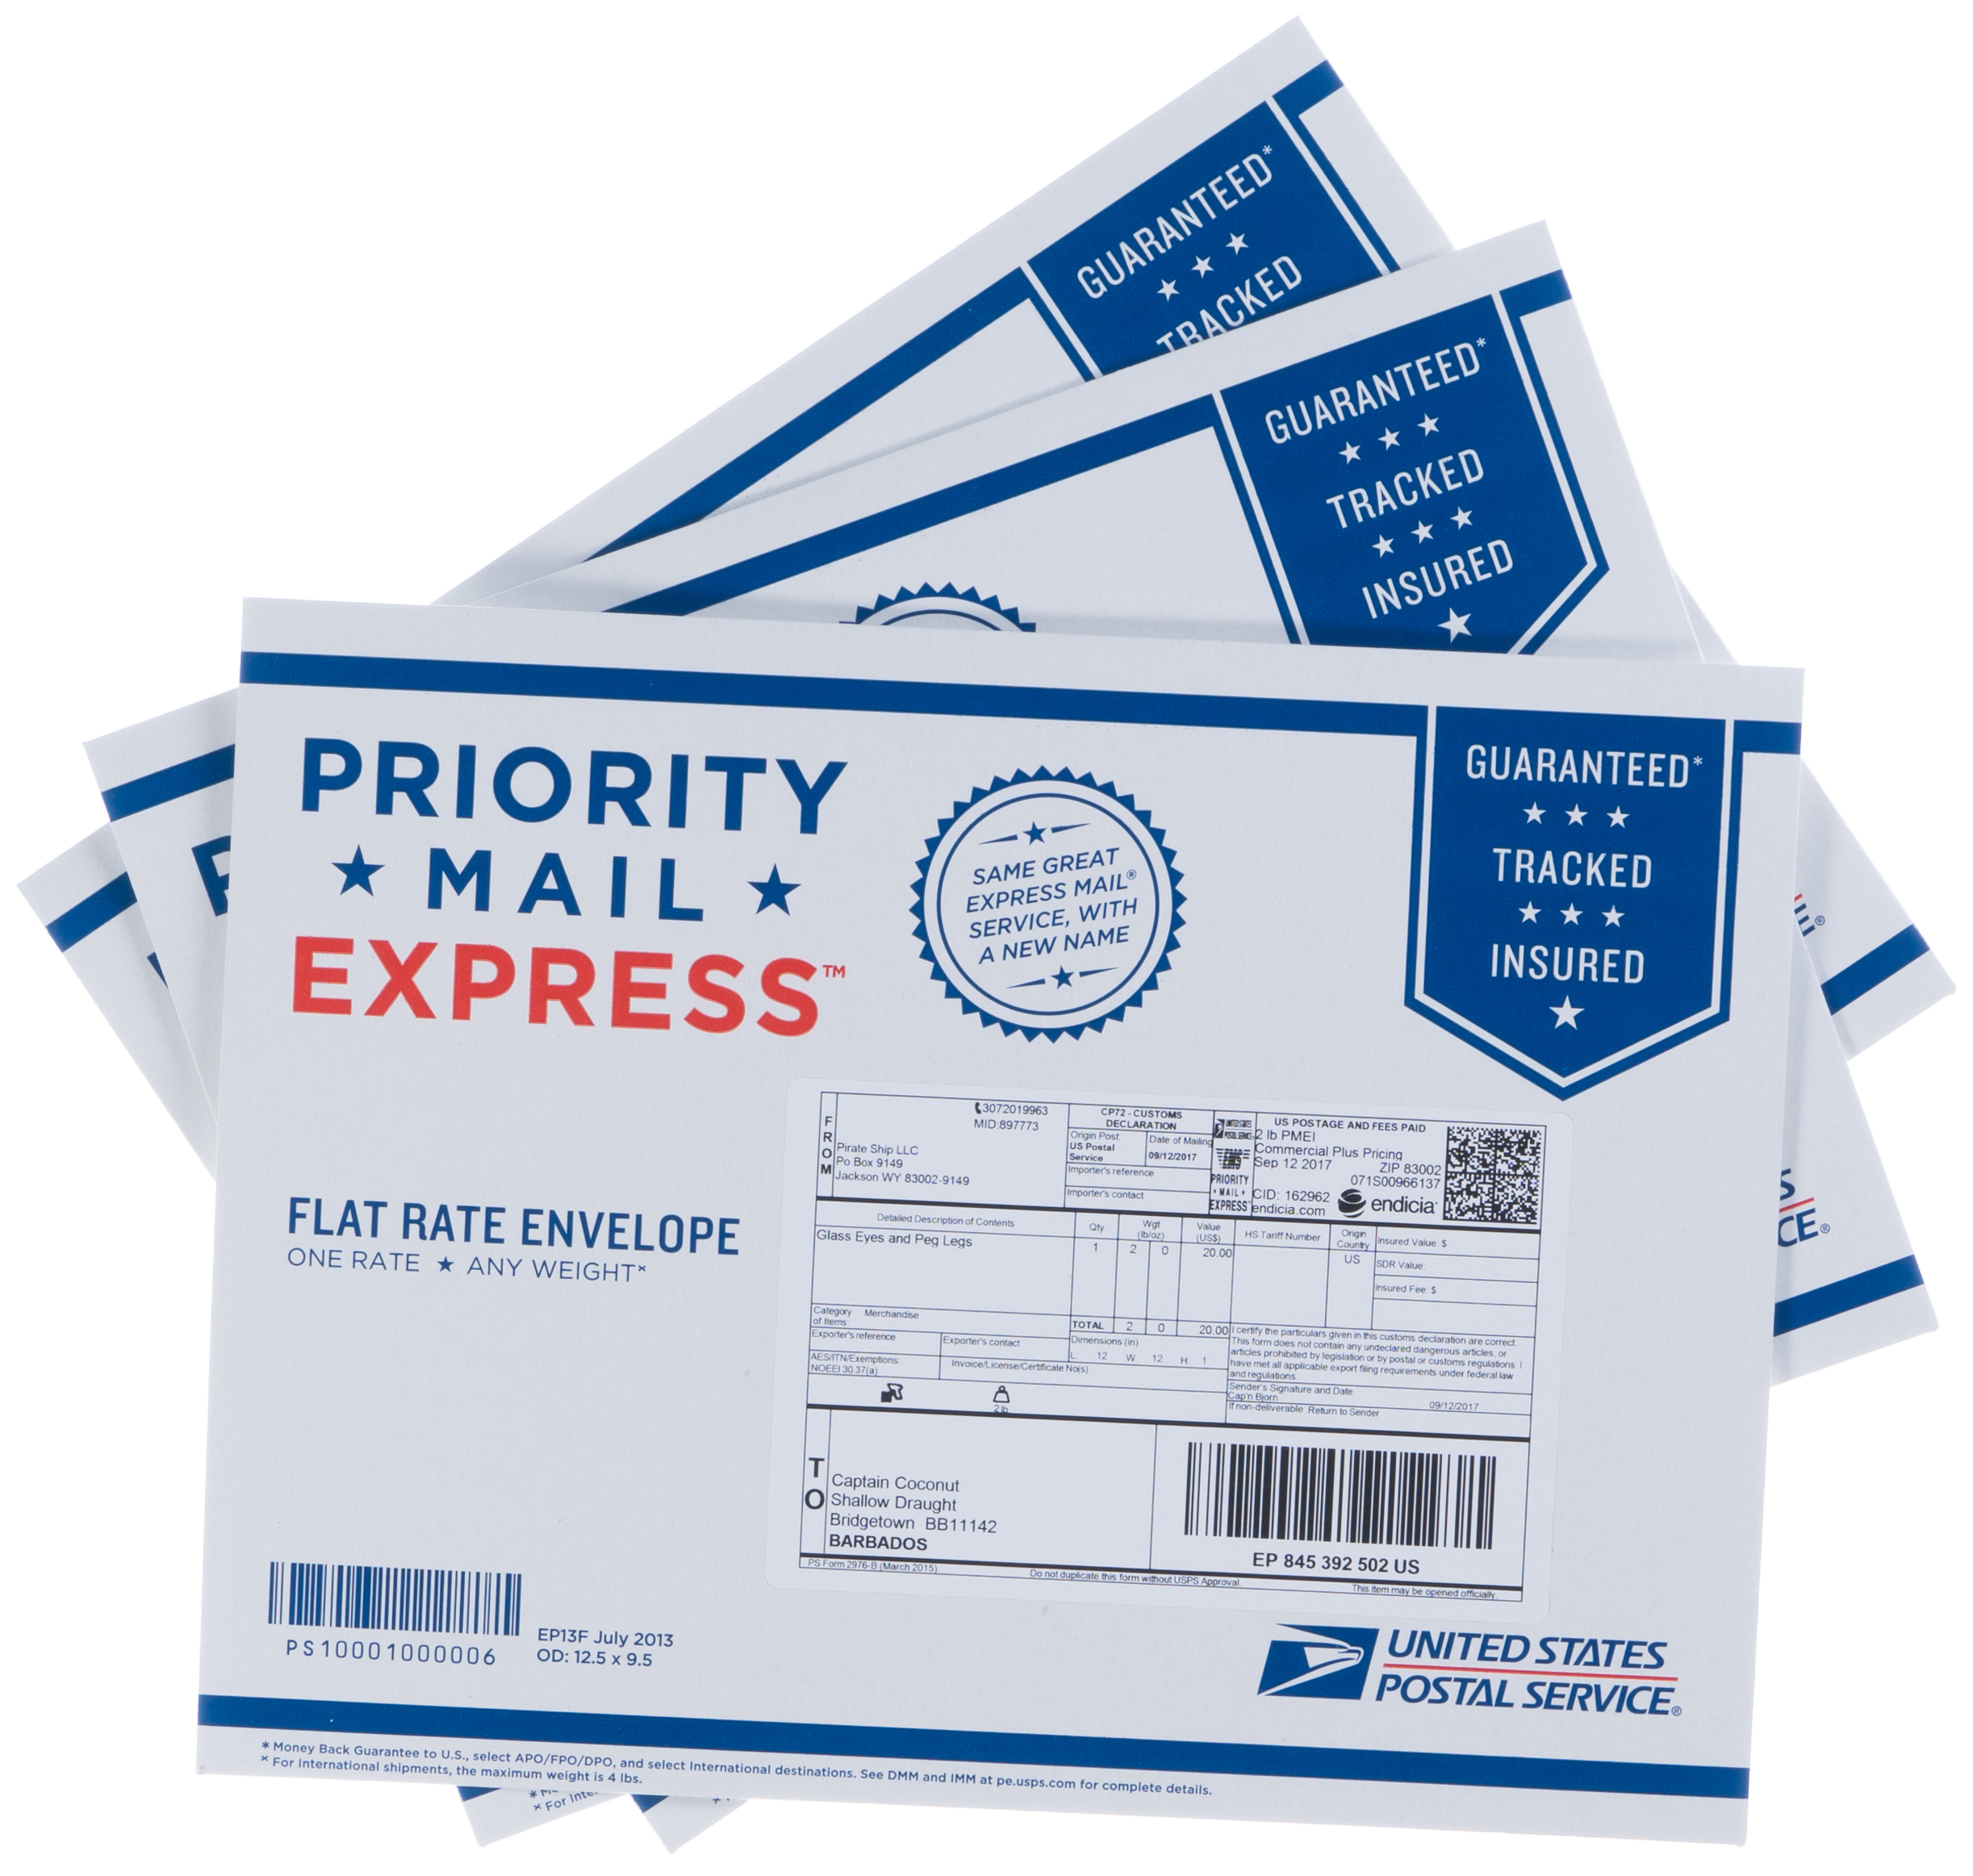 USPS offers free Priority Mail Express Flat Rate envelopes and boxes which bear the Priority Mail Express symbols, which you can order for free through the Buy Postage Online, Print USPS Stamps and Shipping Labels Store. You also can order free Priority Mail Express stickers, which you can place on your own packaging.